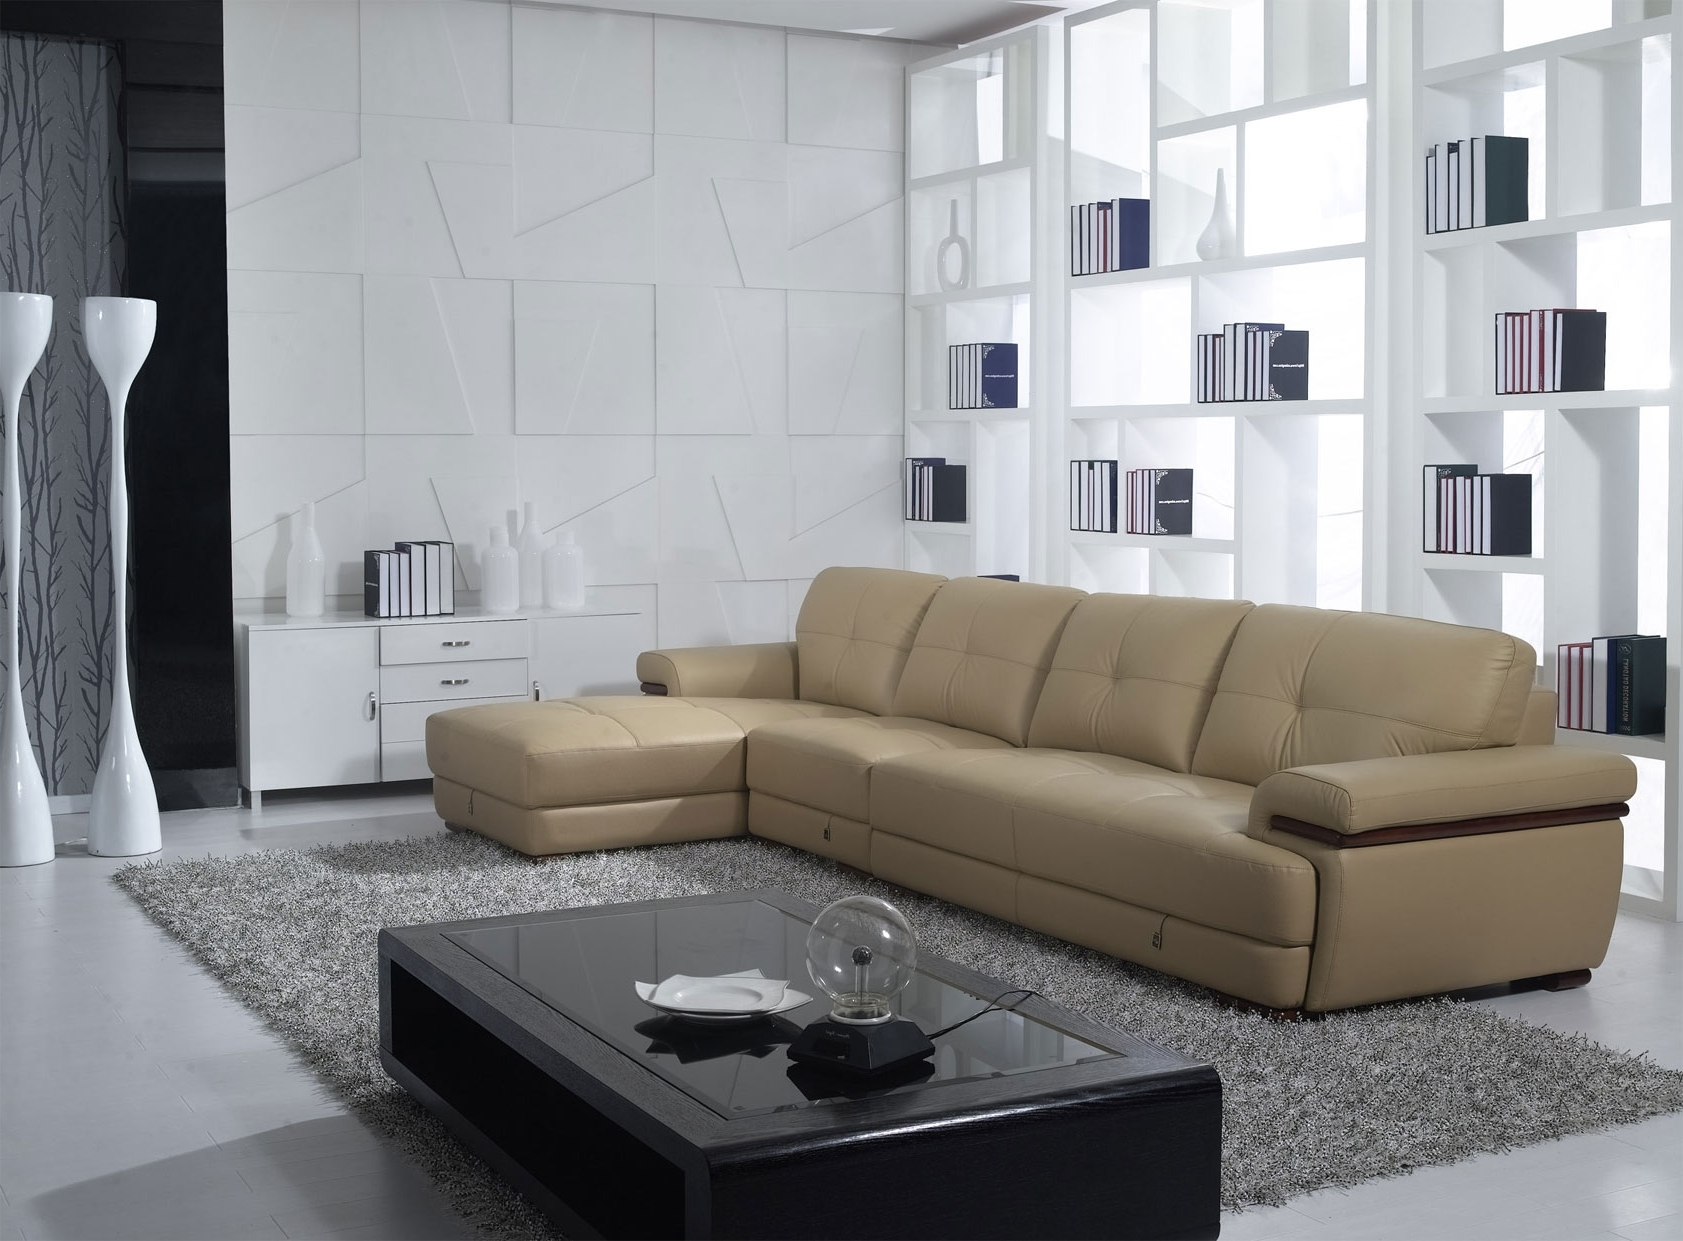 Preferred Fancy Quality Sectional Sofas 15 Sofas And Couches Ideas With In Quality Sectional Sofas (View 10 of 15)